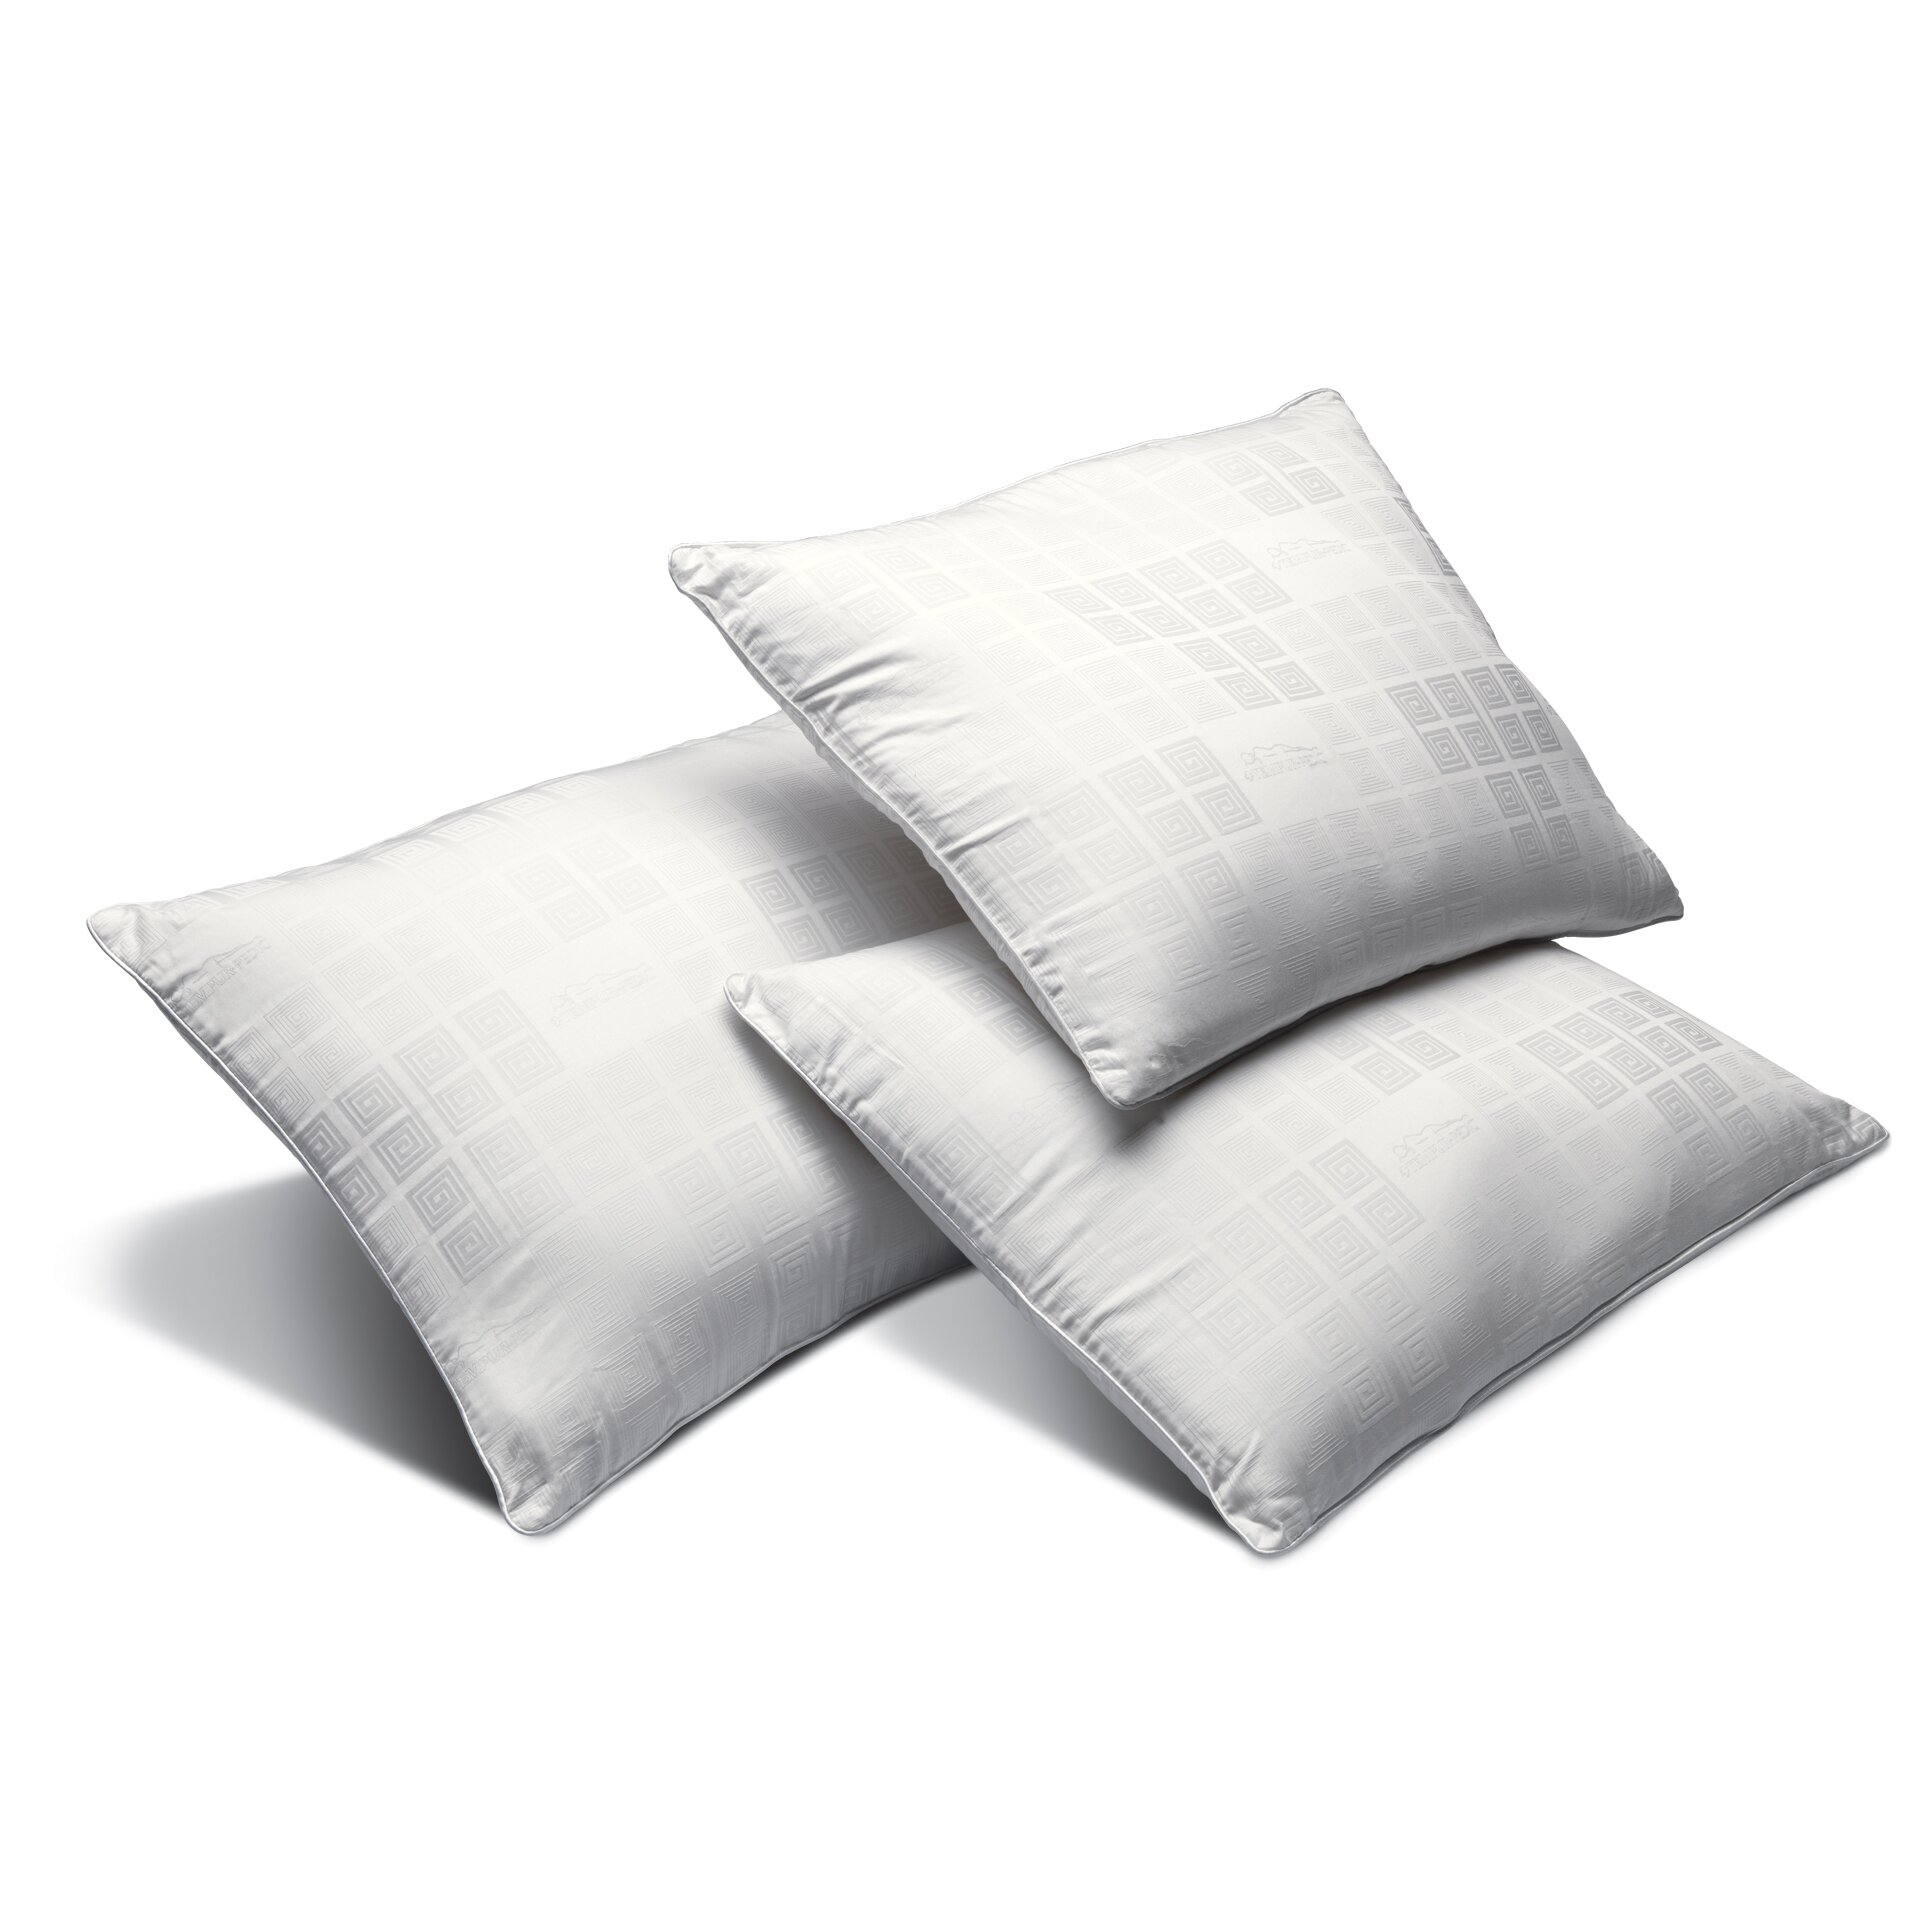 Tempur Pedic Traditional Pillow Extra Soft Reviews : Tempur-Pedic Soft Traditional Memory Foam Standard Pillow Wayfair